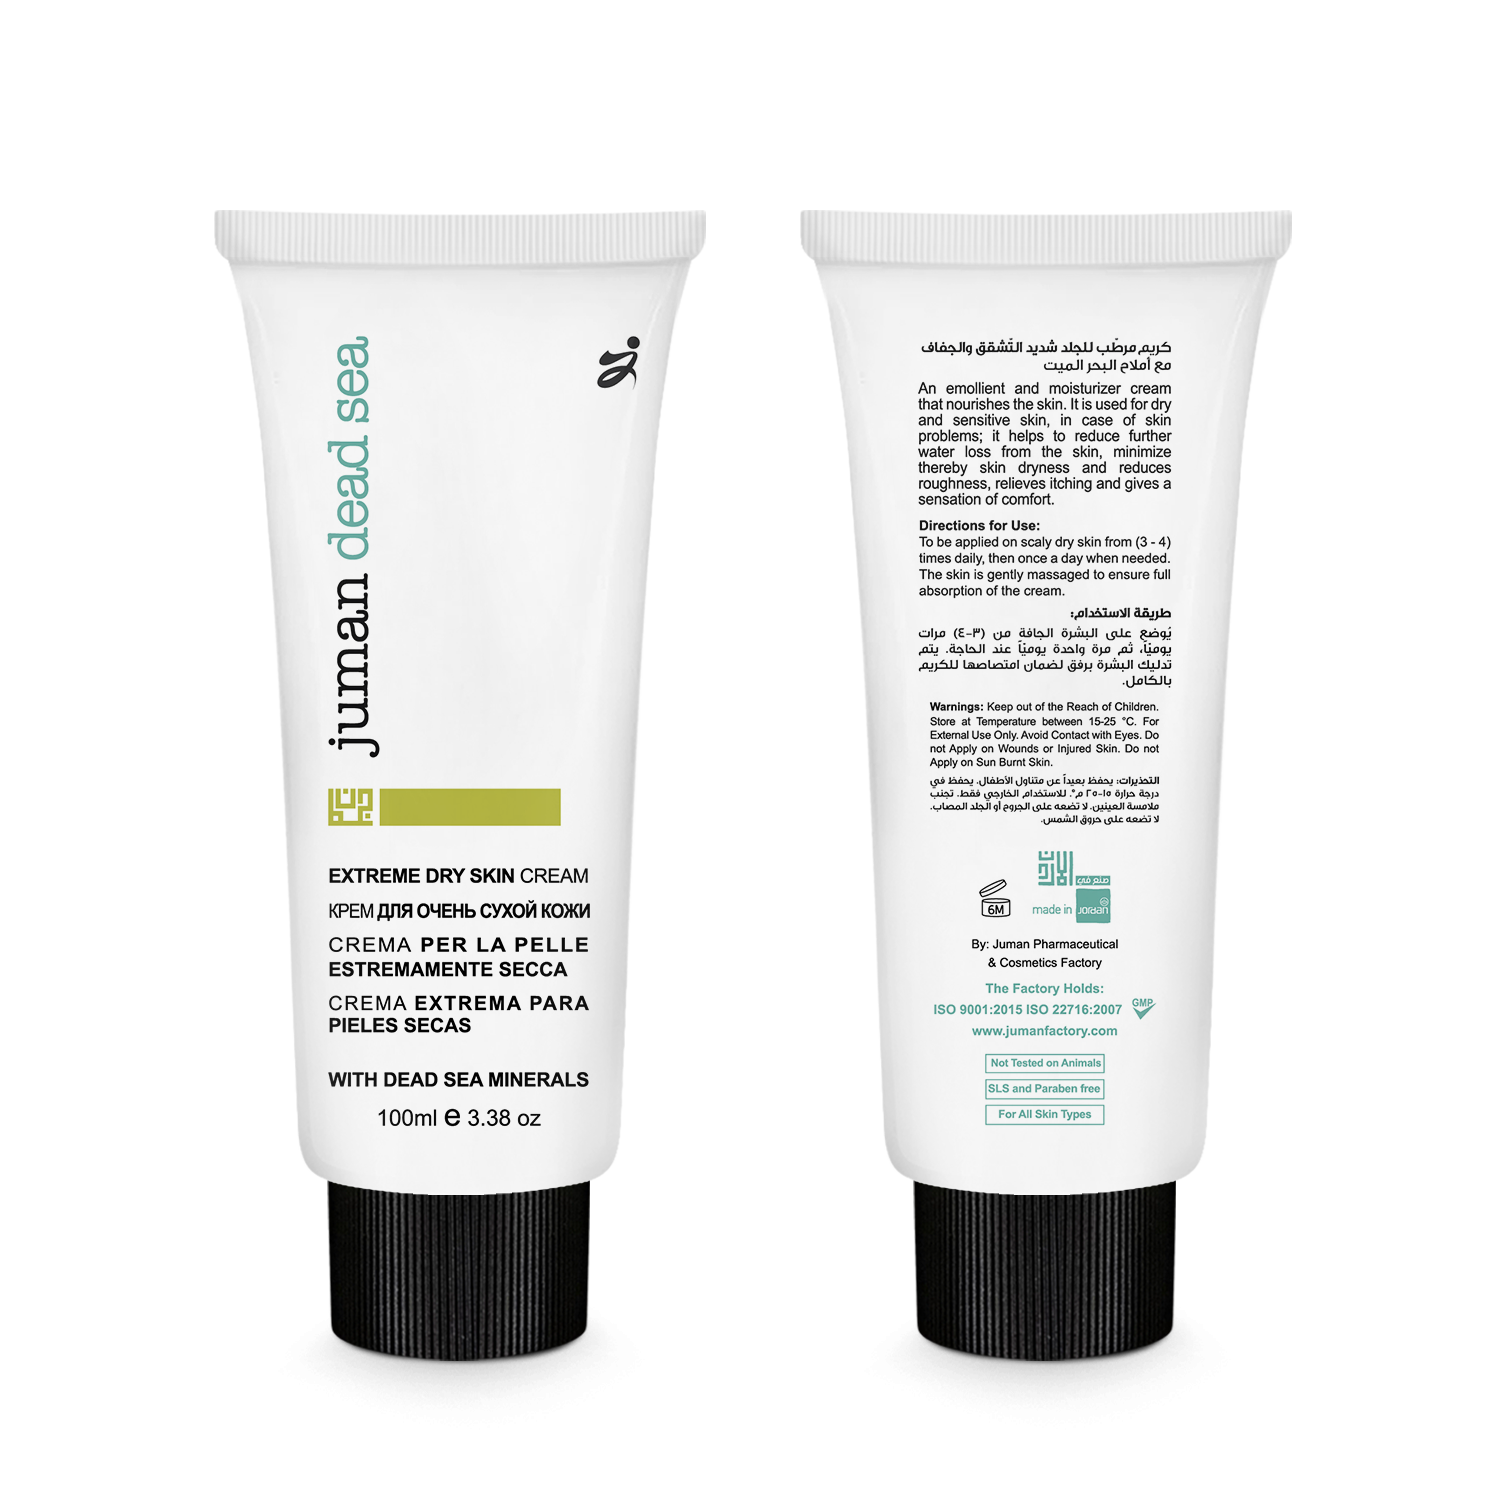 Buy Extreme Dry Skin Cream with Dead Sea Minerals